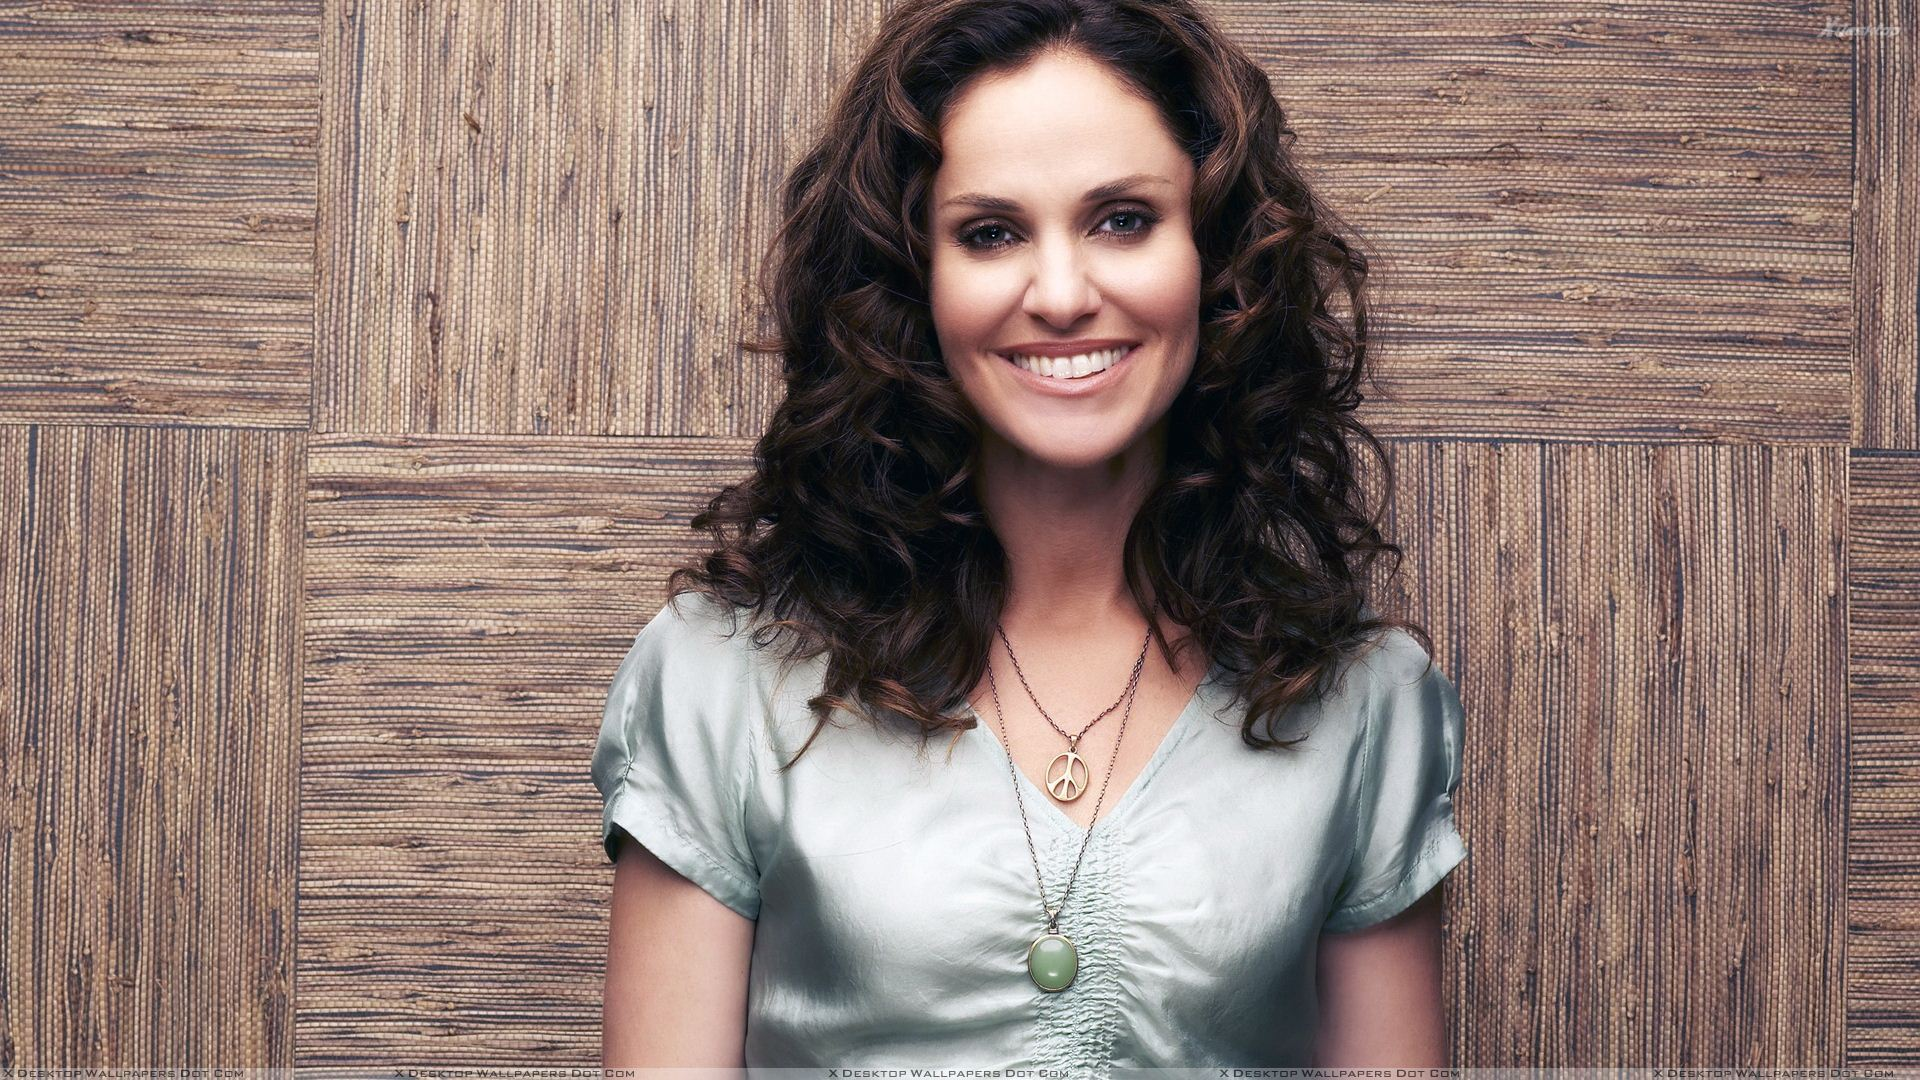 Amy Brenneman Cute Smiling Face Looking Front Photoshoot